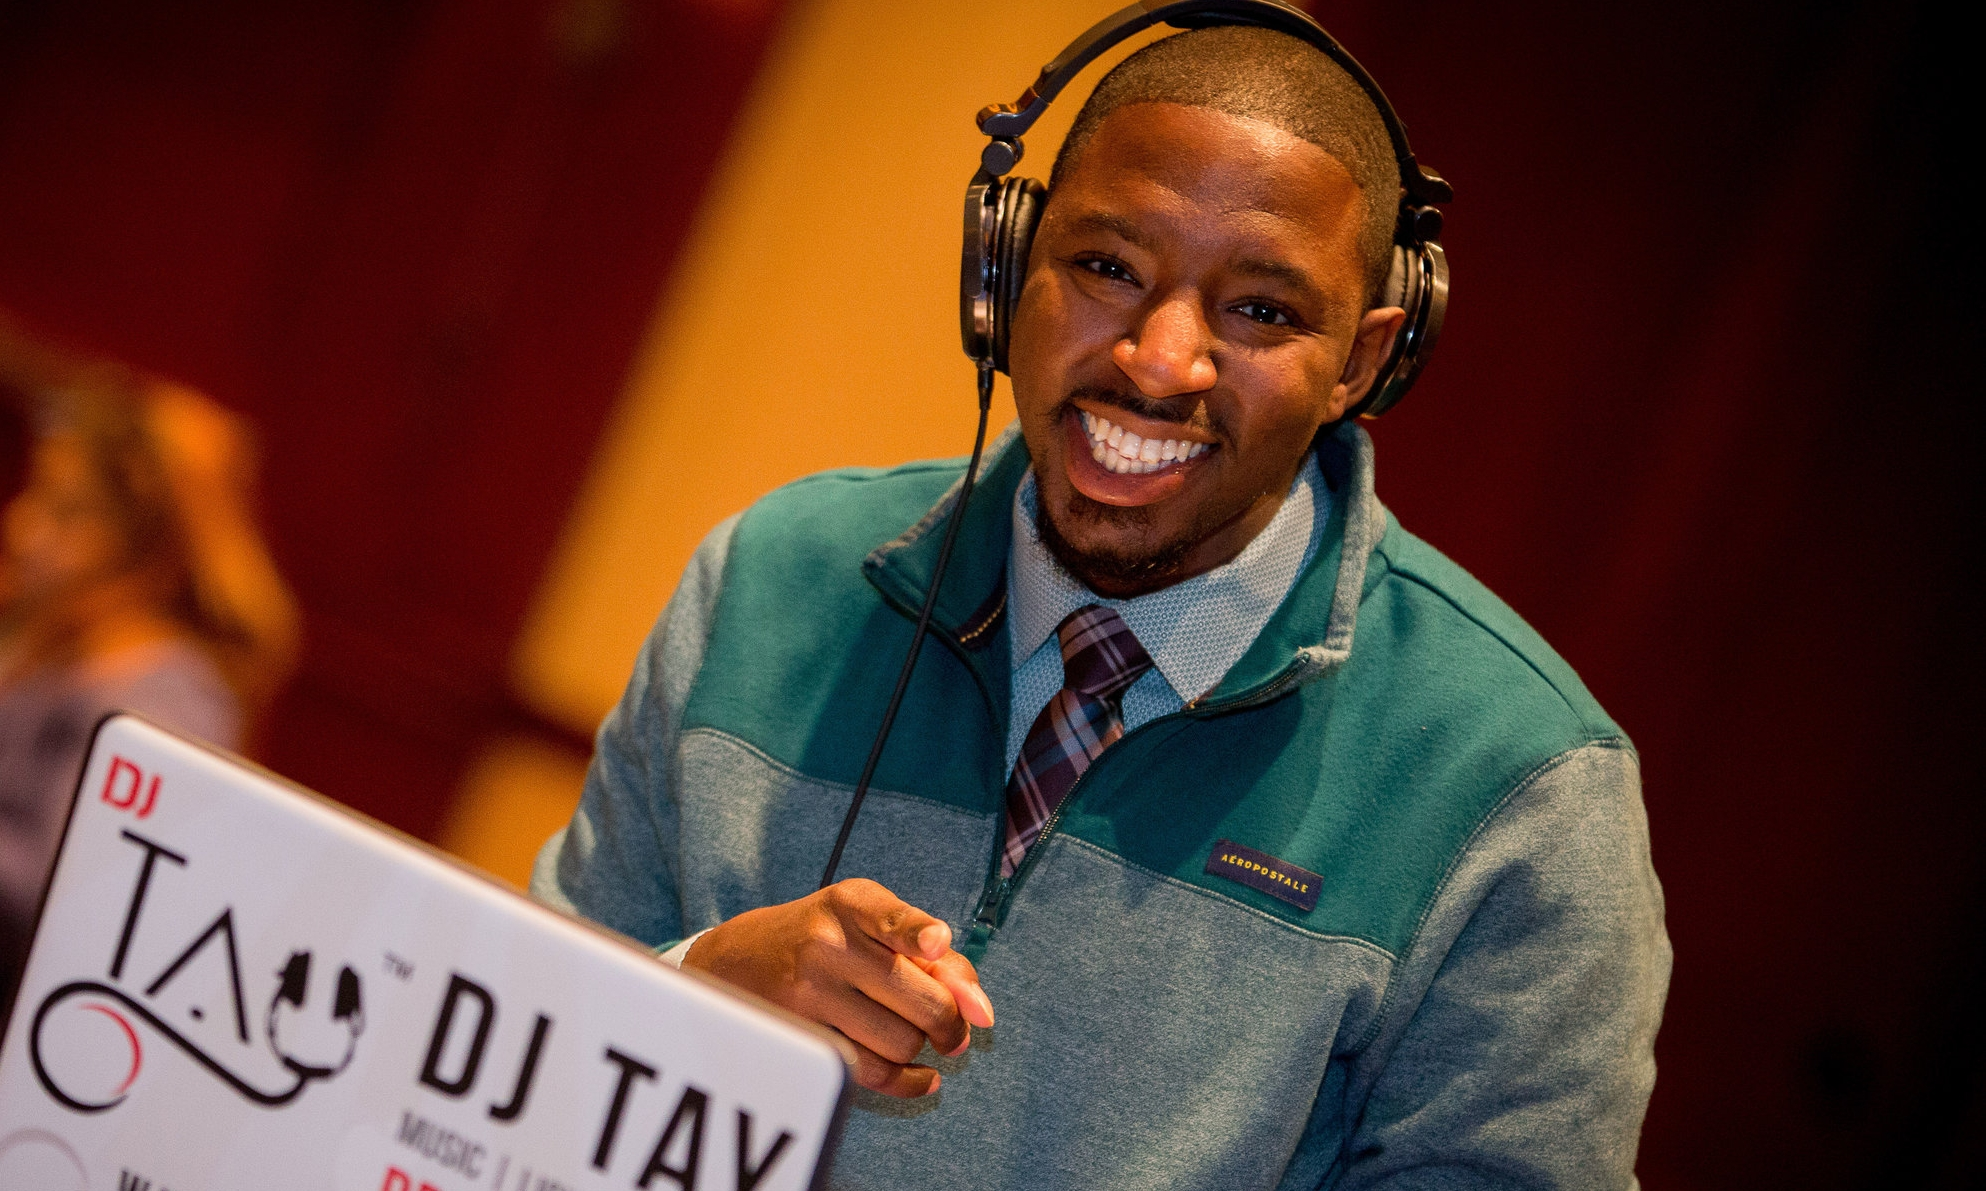 DJ Tay - Luxury Music Event SpecialistMixshow DJ for 107.9 The Beat